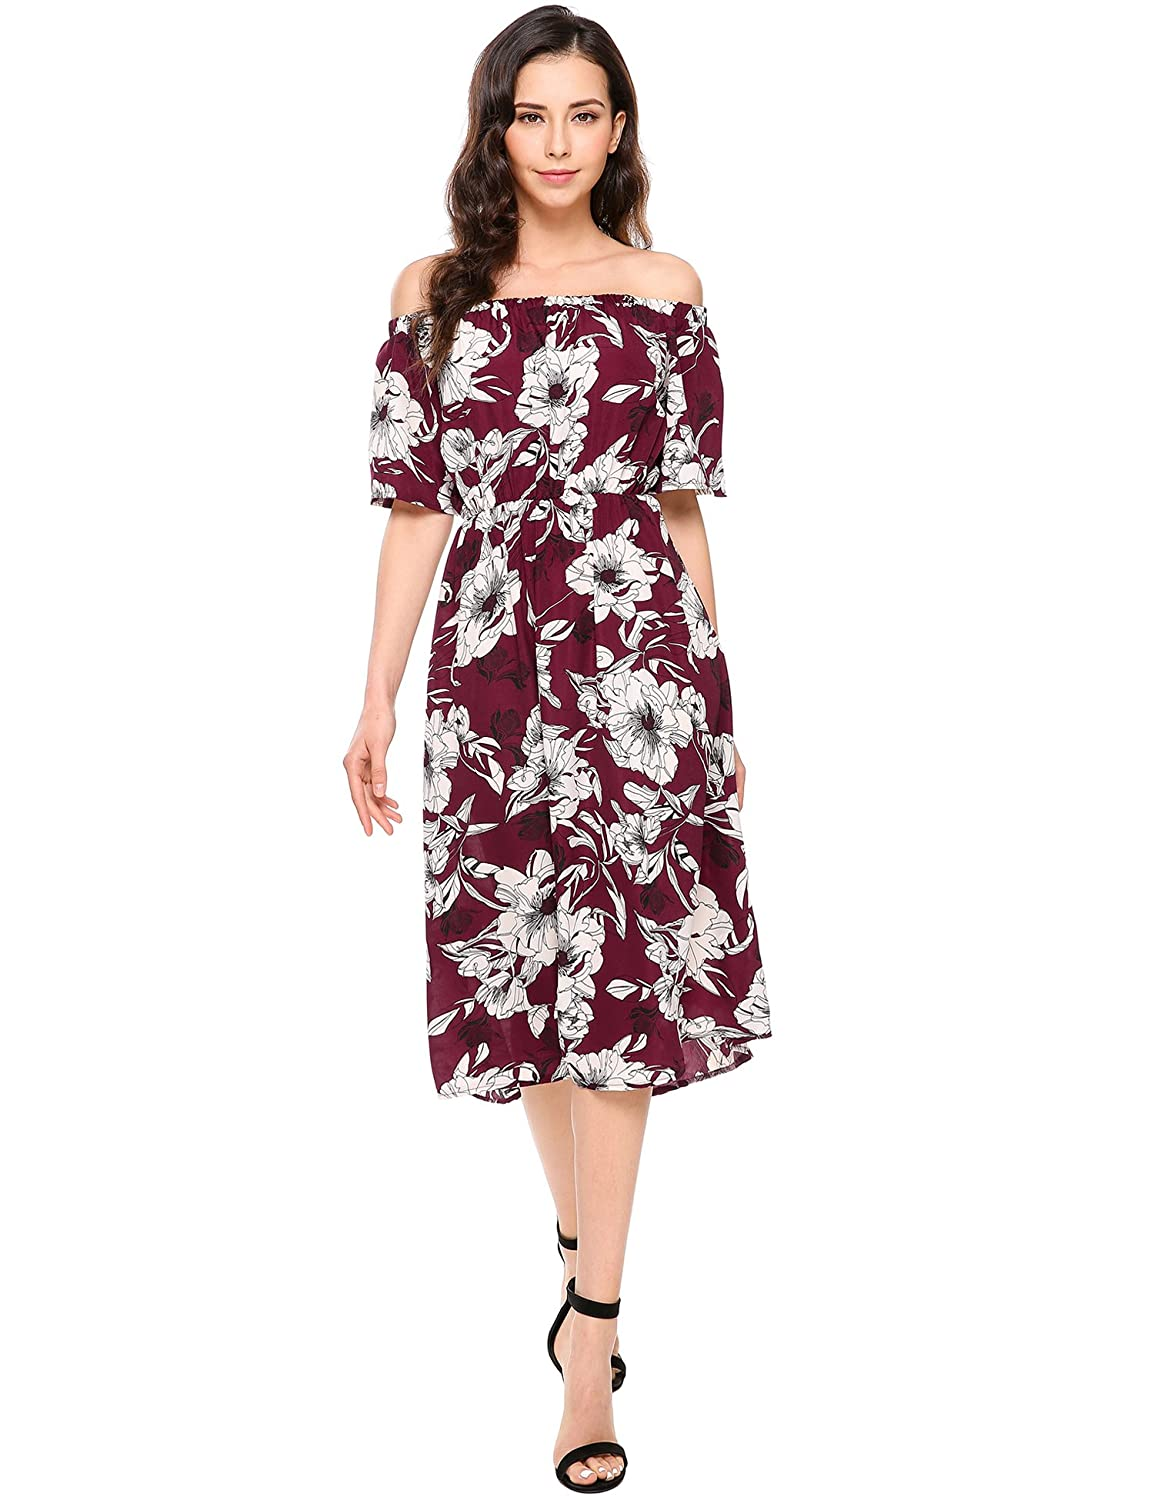 a7b4895b8a47 Meaneor Women s Casual Off Shoulder Short Sleeve Floral Pleated Ruffle Maxi  Dress at Amazon Women s Clothing store